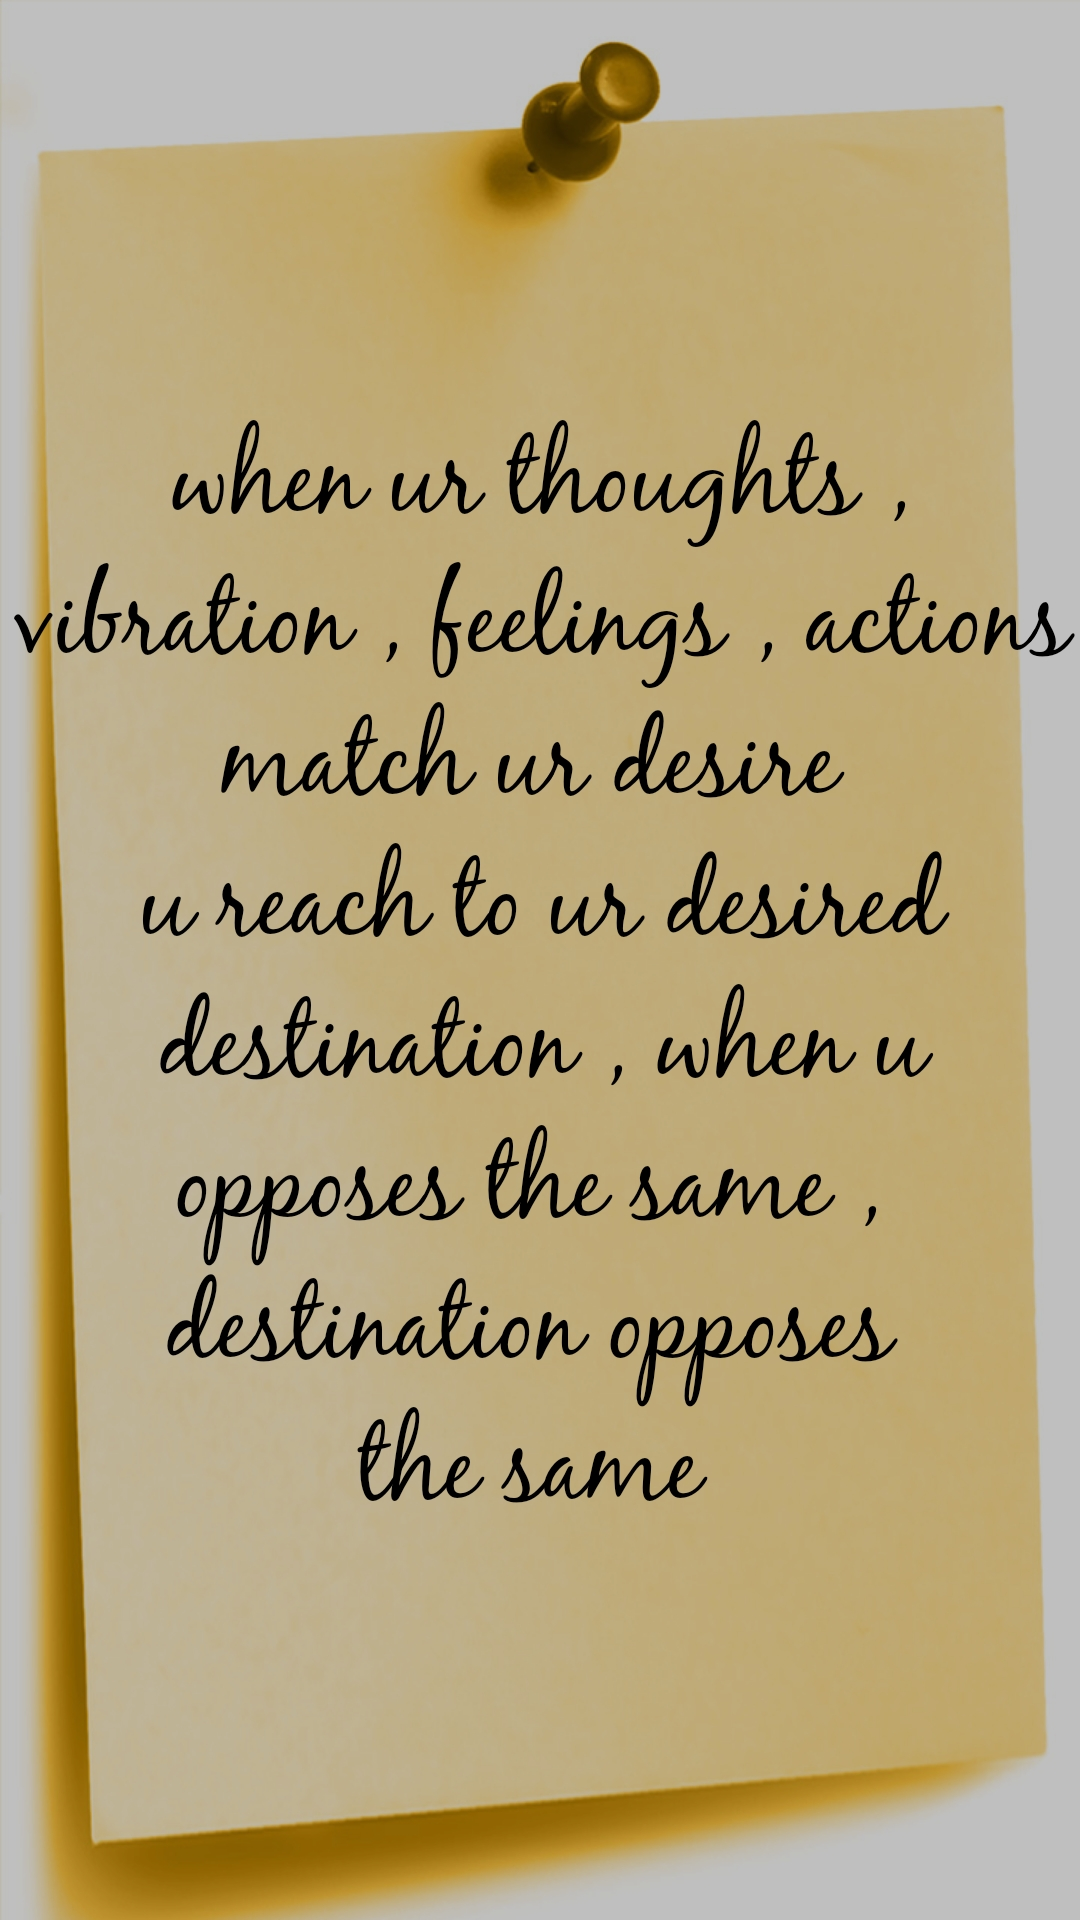 when ur thoughts , vibration , feelings , actions match ur desire  u reach to ur desired destination , when u opposes the same ,  destination opposes  the same